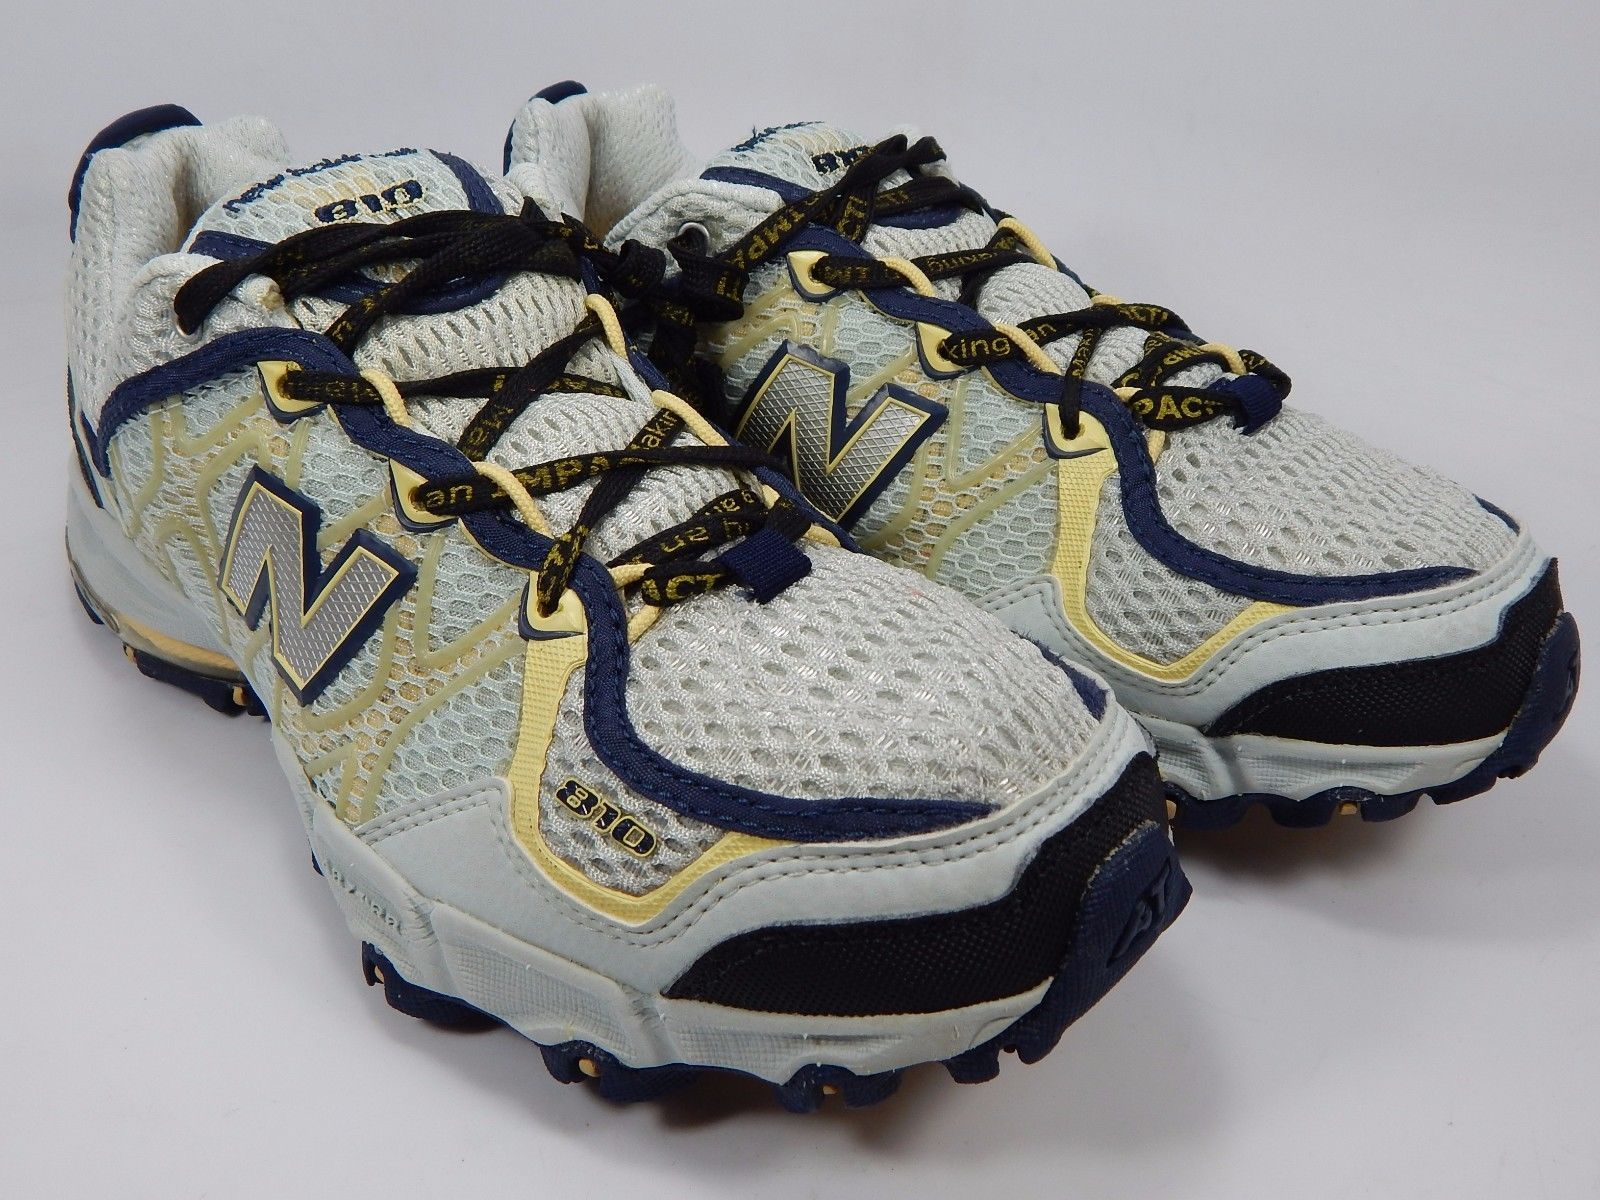 New Balance 810 Women's Trail Running Shoes Size US 9.5 M (B) EU 41 Light Blue